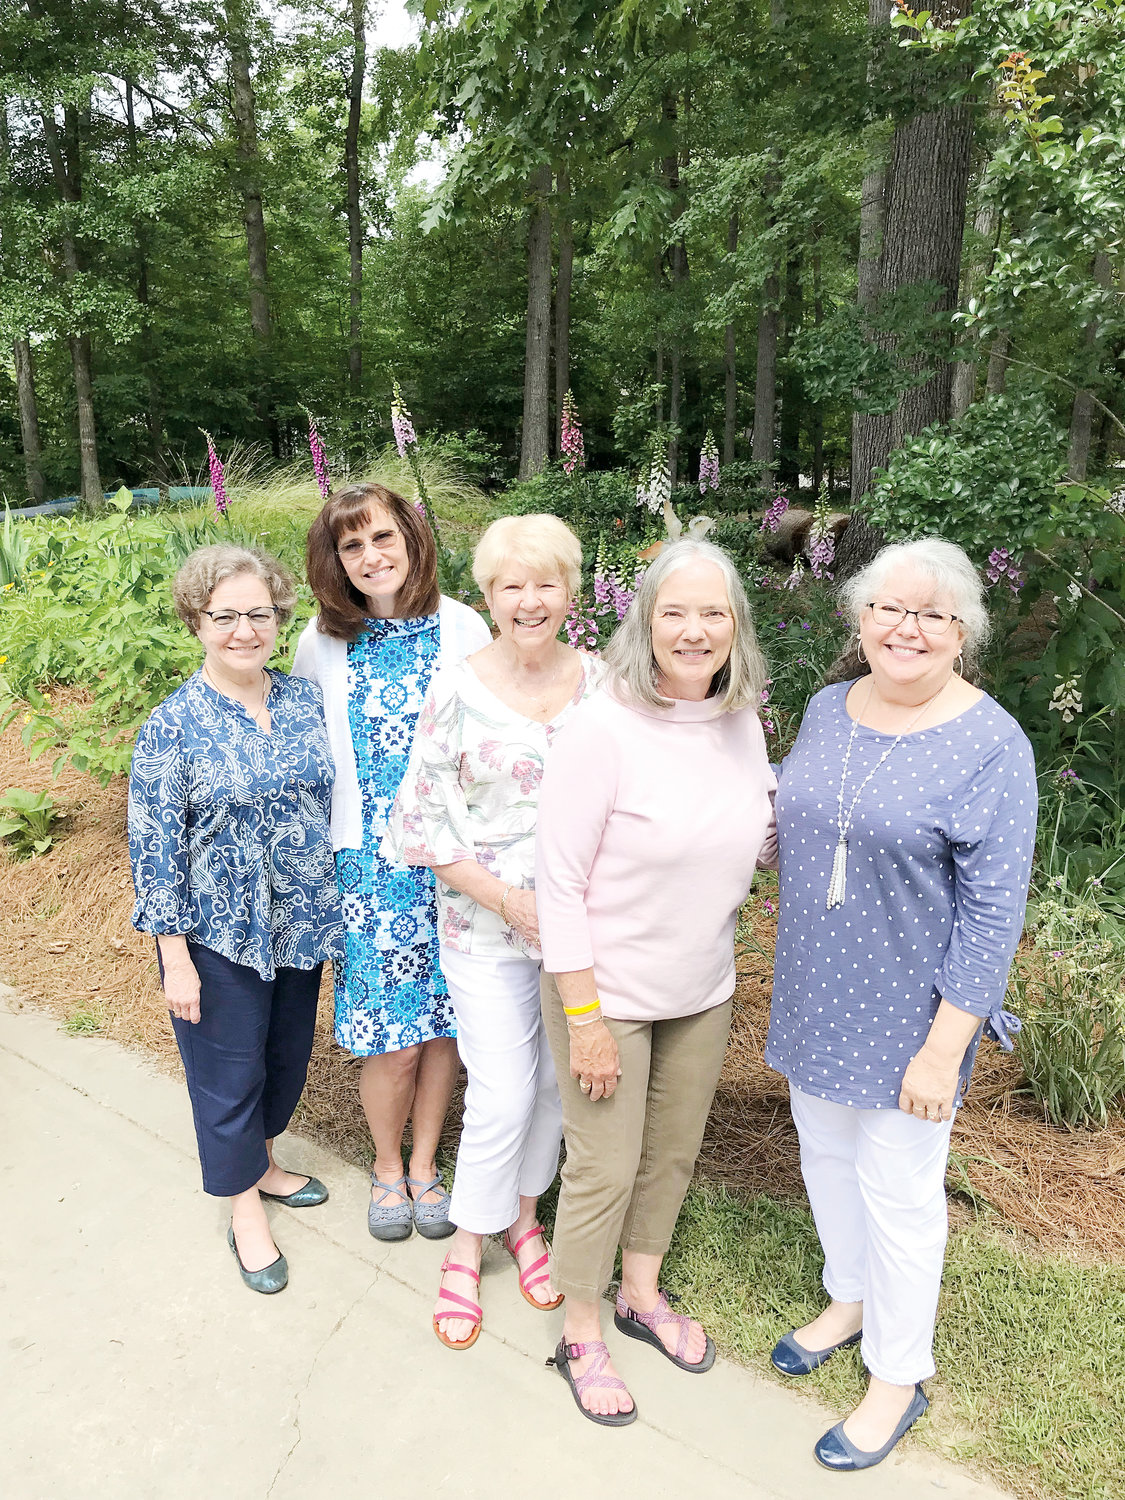 Hostesses for the May meeting of the Buies Creek Garden Club are, from left, Johnnie Jackson, Kathy Halm, Joy Aycock, Barbara Bethea and Kathy Stephenson.